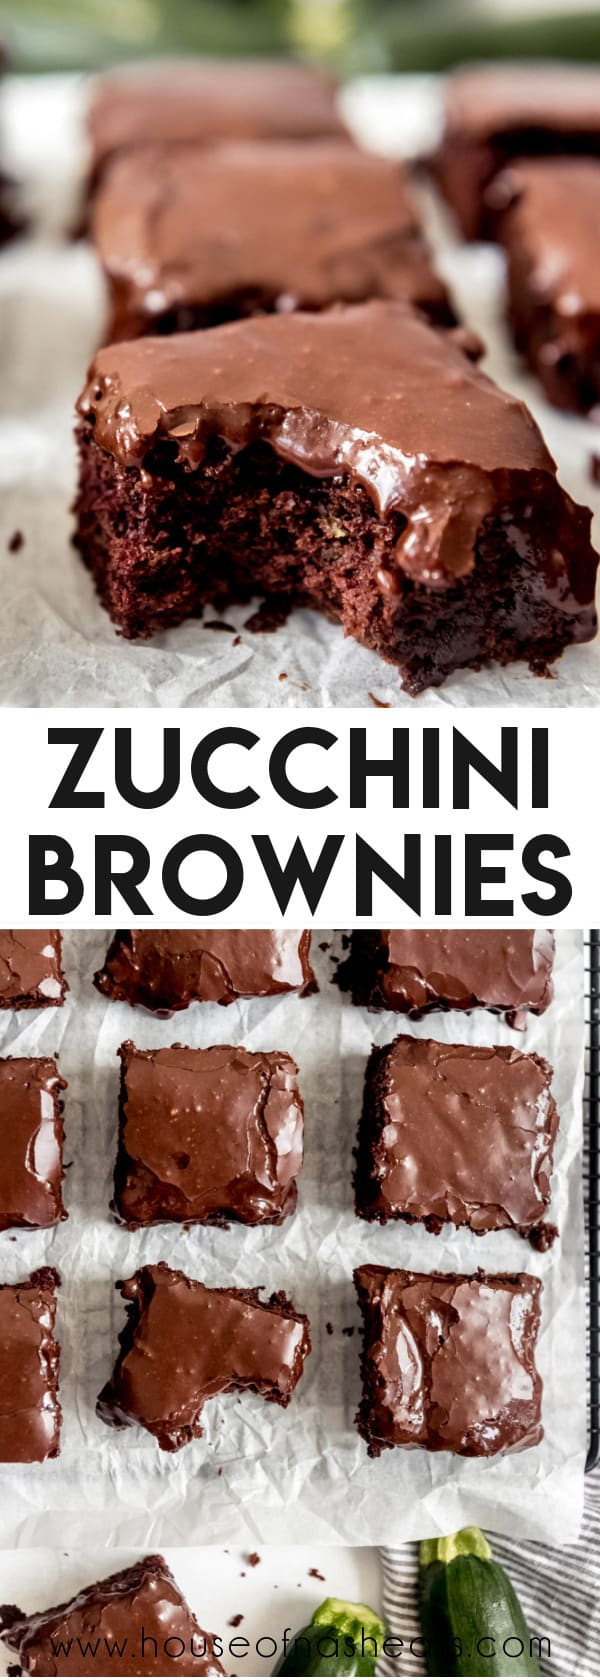 It Never Hurts To Eat Extra Veggies Right These Rich Chocolate Zucchini Brownies Are Made Wit Brownie Recipes Chocolate Icing For Brownies Zucchini Brownies